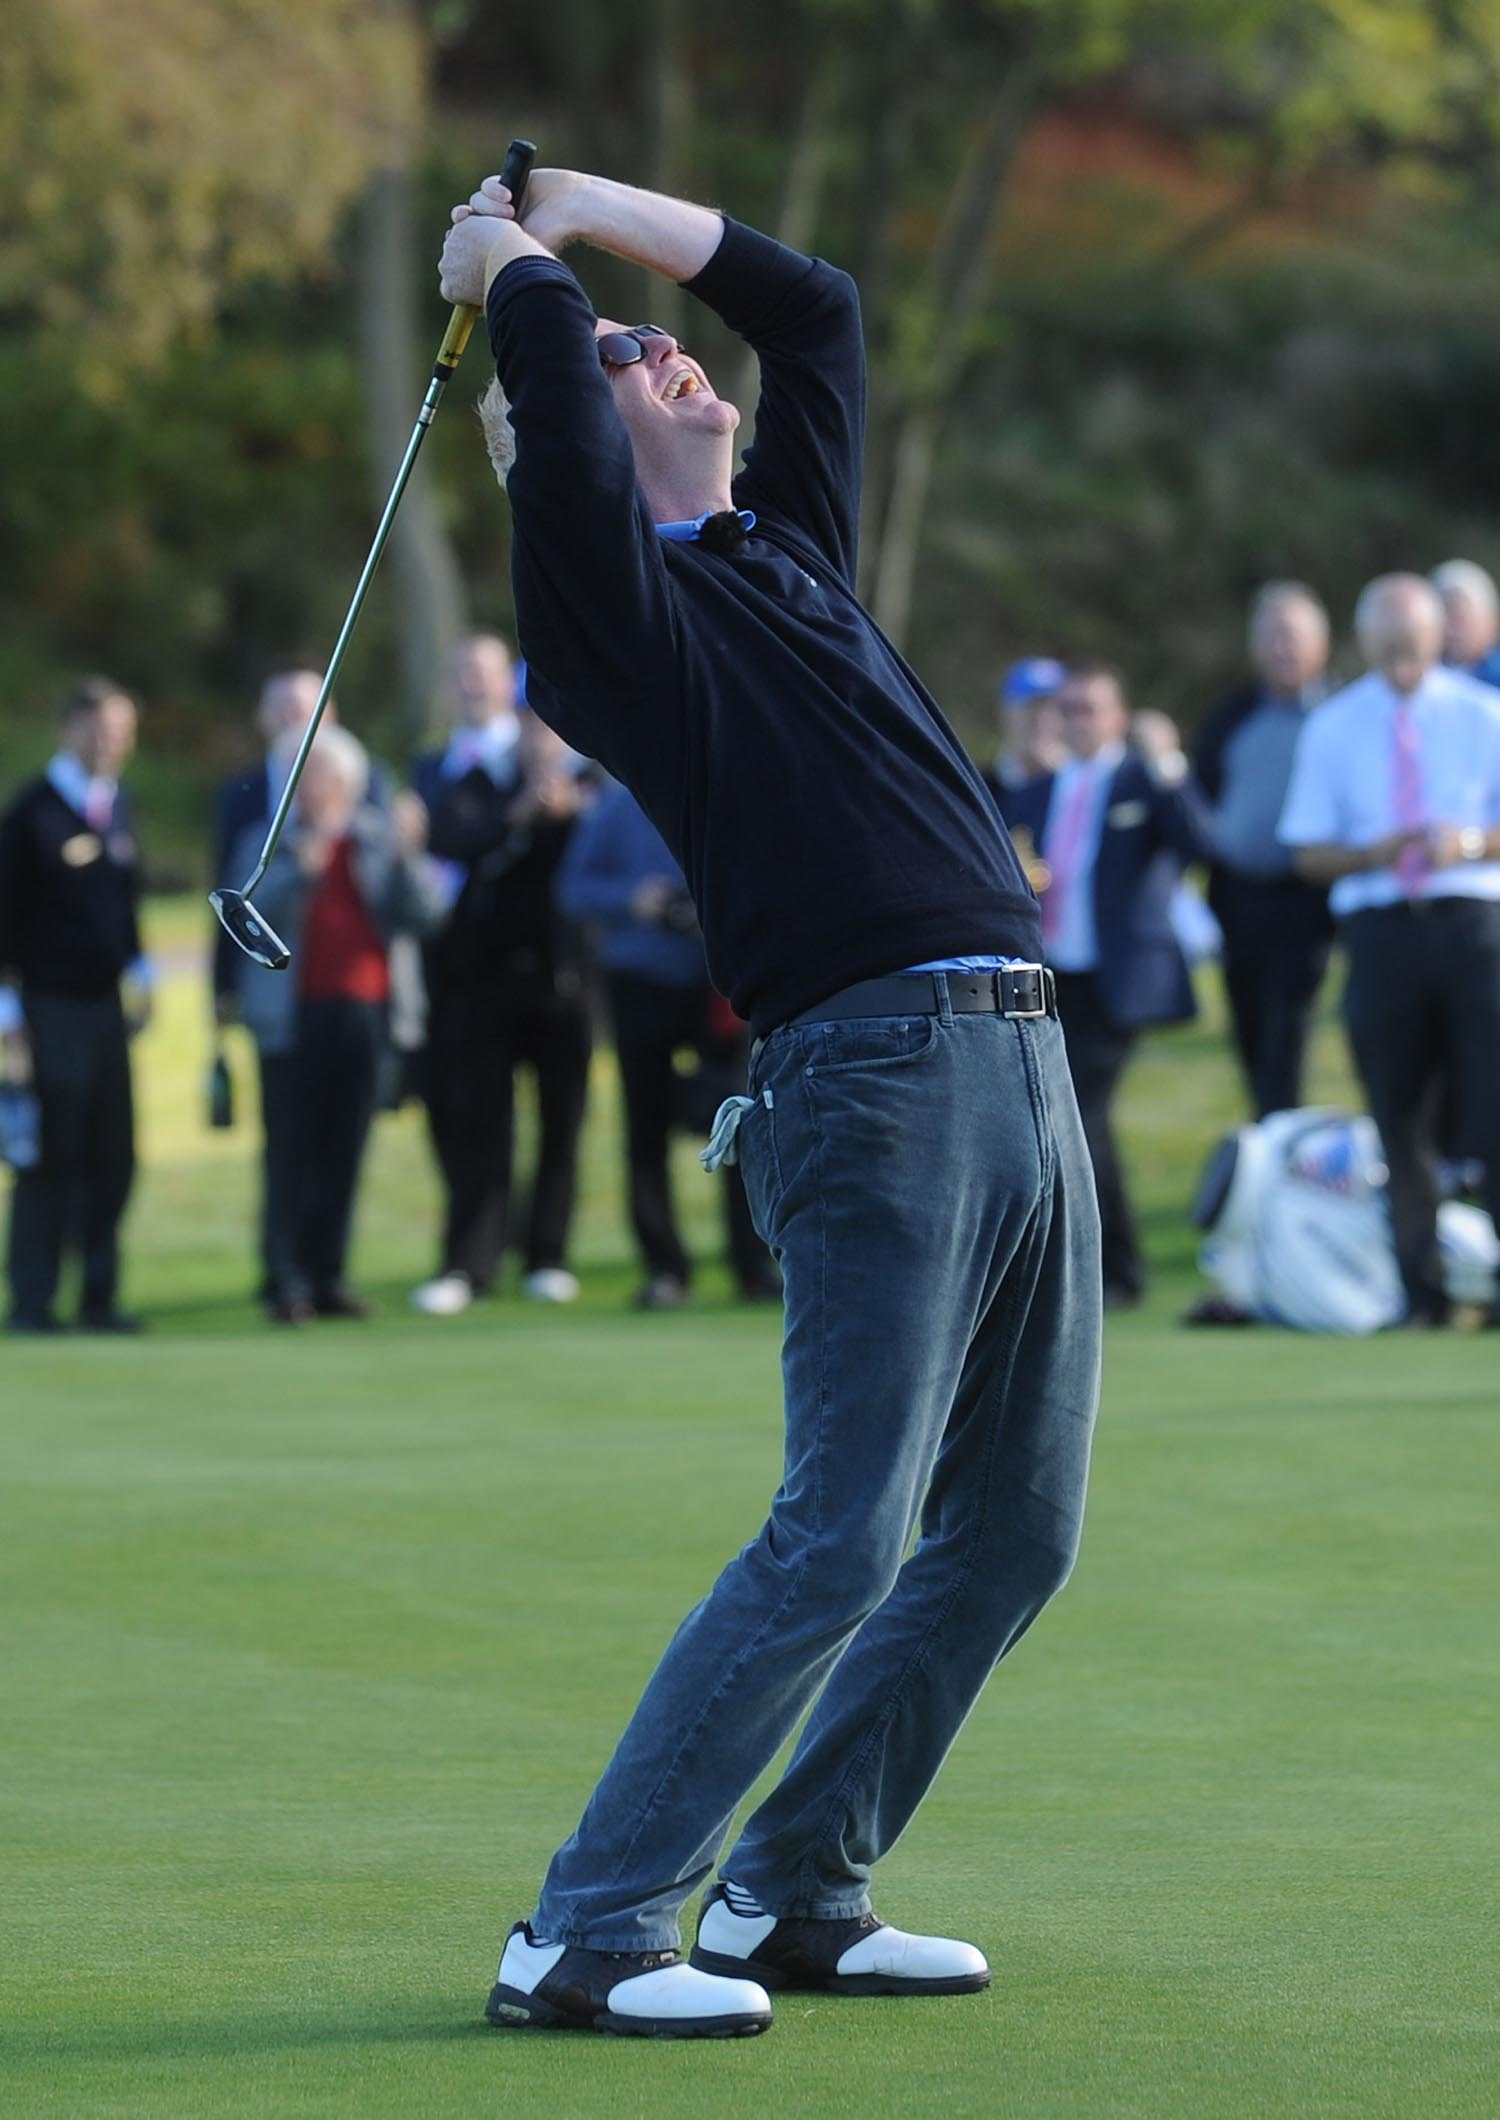 Chris Evans misses a putt on the 18th at Celtic Manor